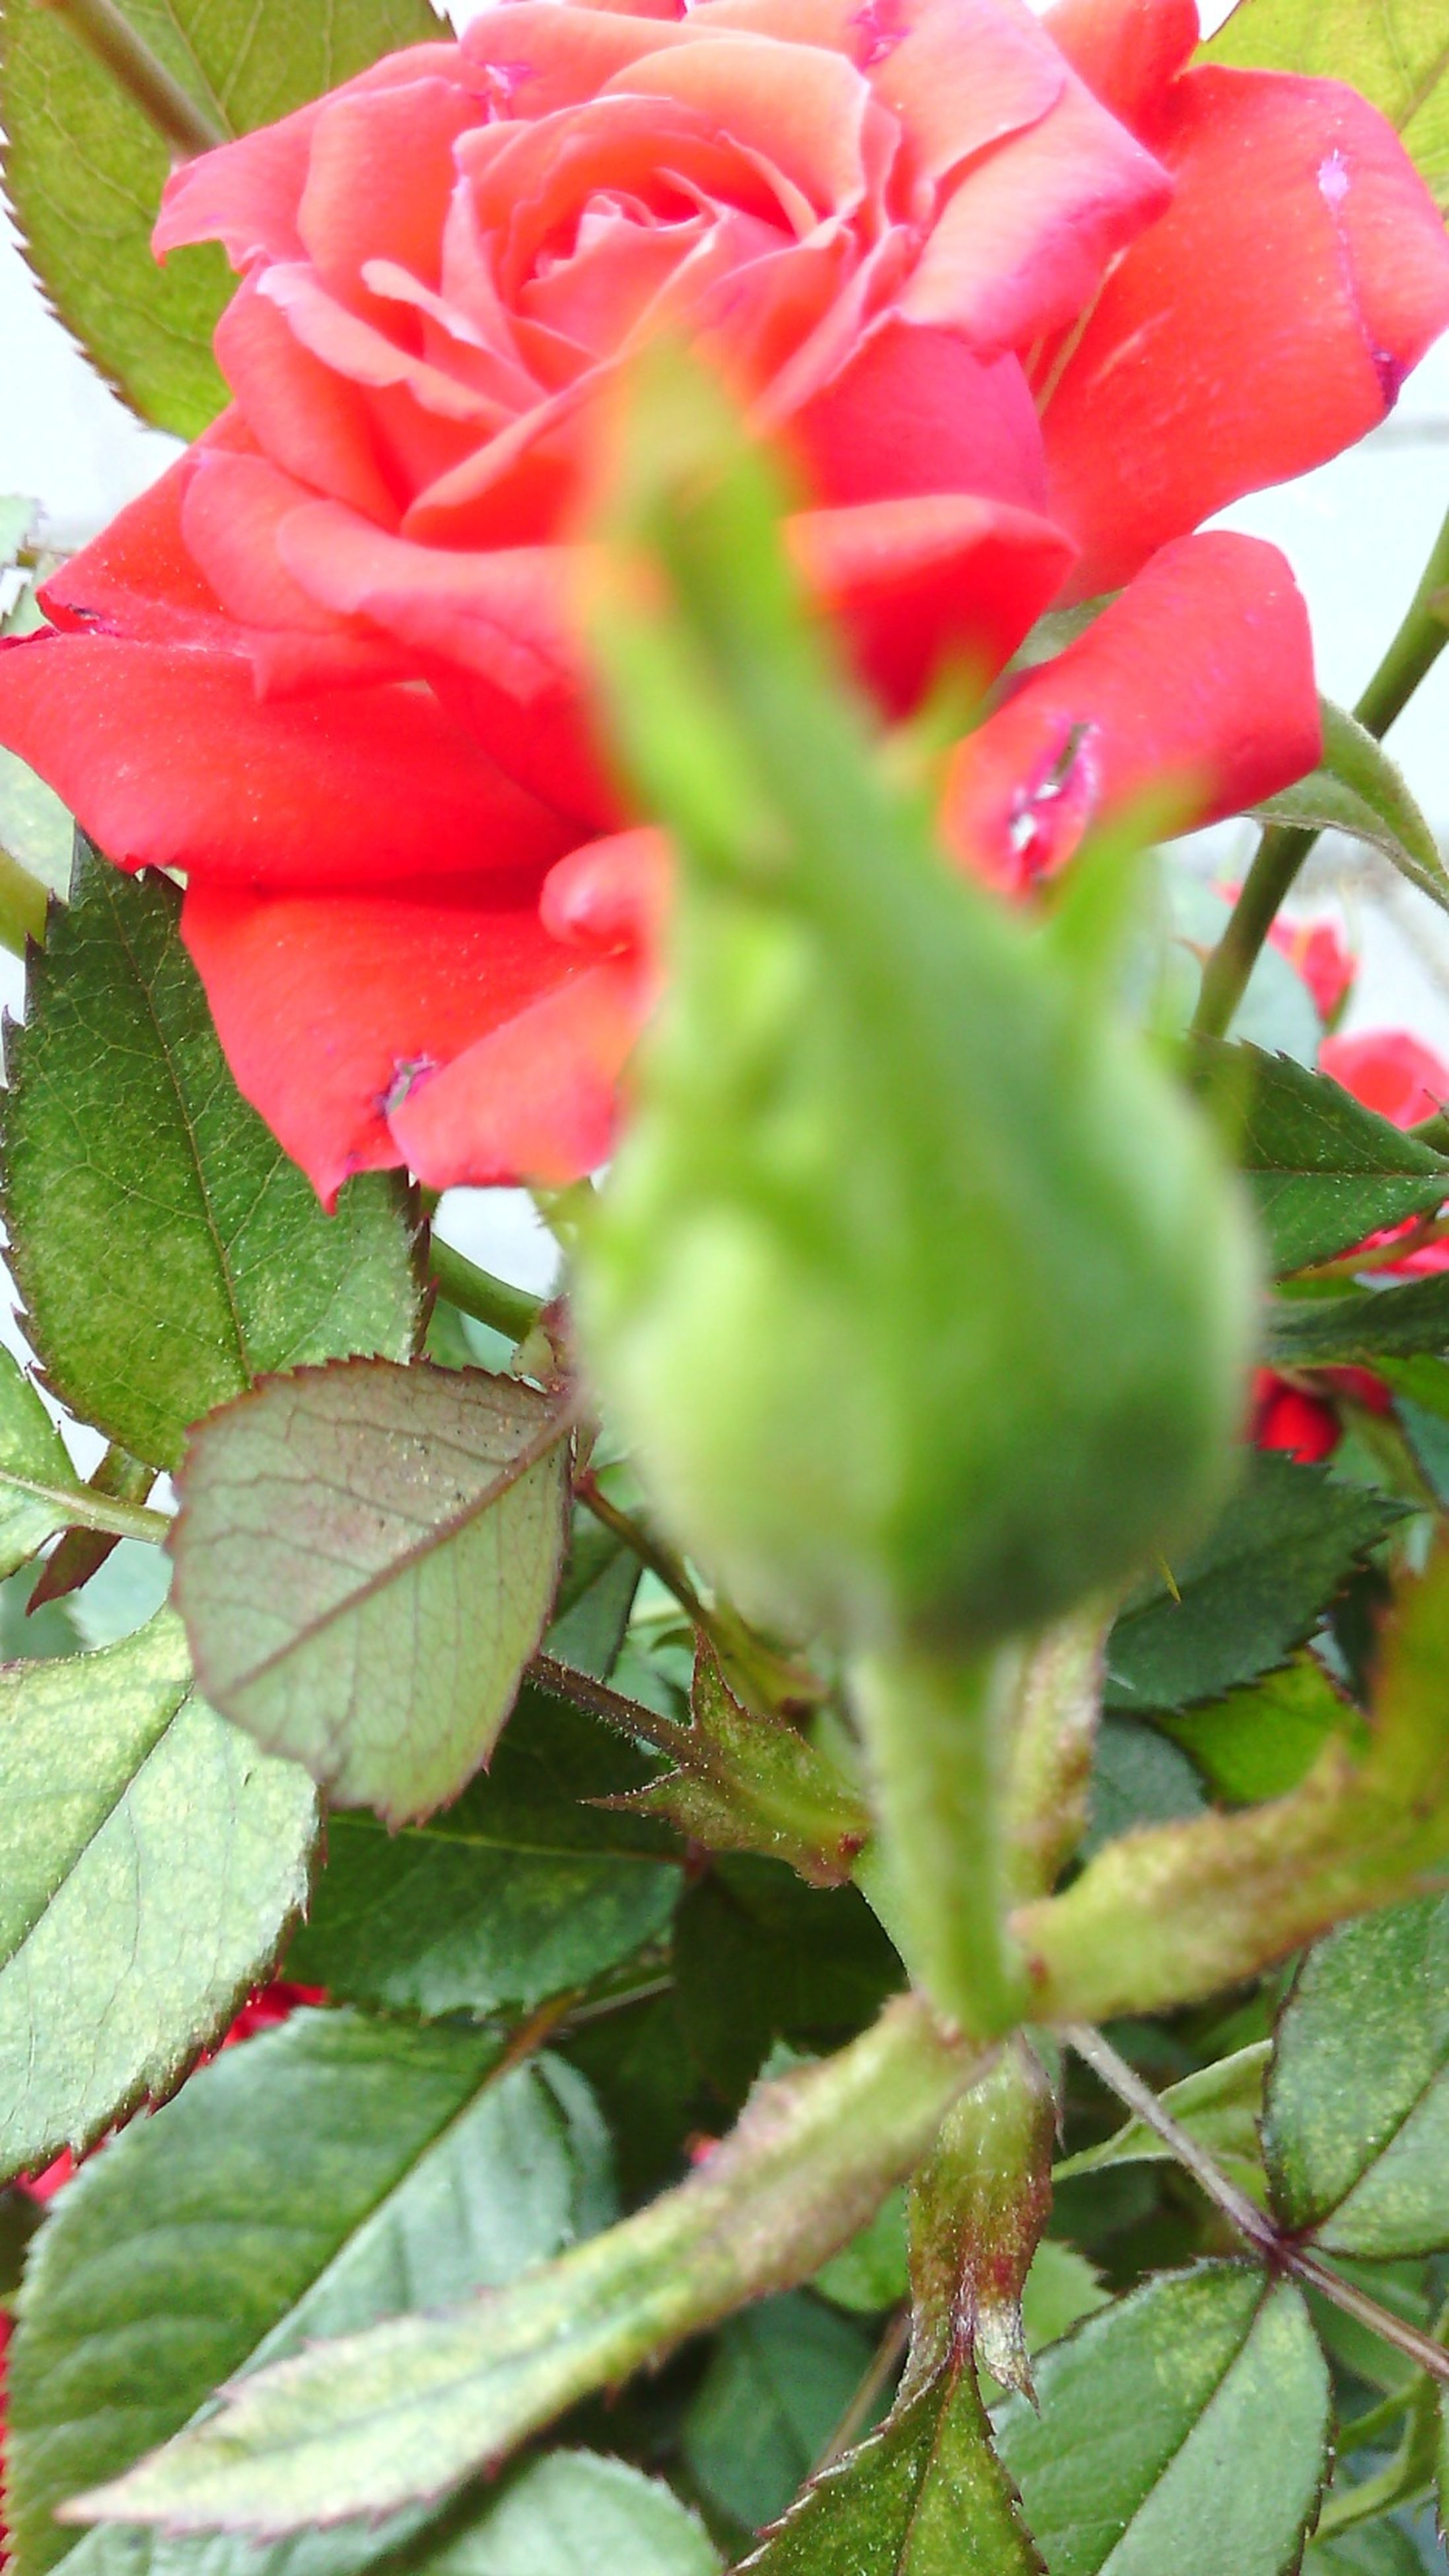 flower, growth, freshness, petal, fragility, leaf, plant, flower head, close-up, red, beauty in nature, nature, blooming, focus on foreground, single flower, rose - flower, pink color, bud, green color, day